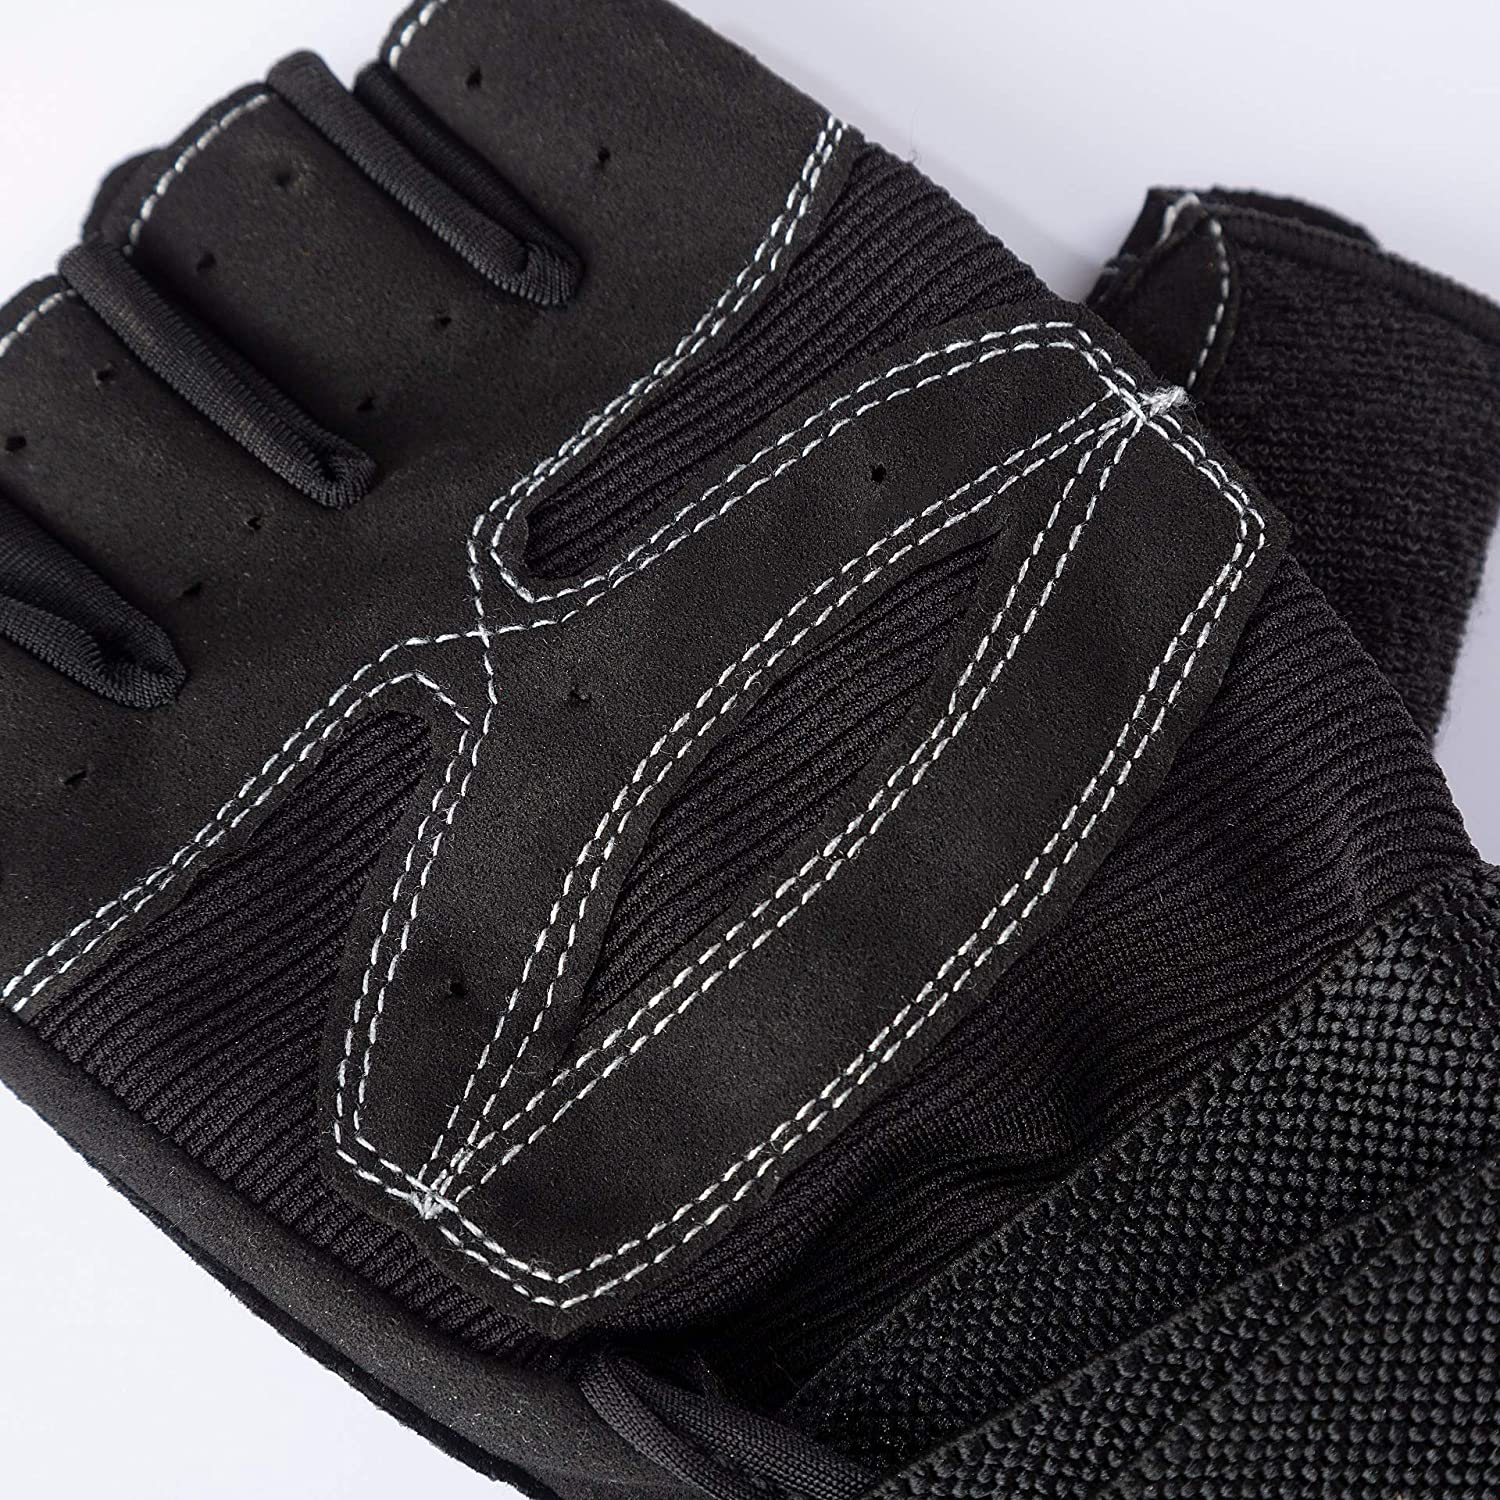 DMY Weight Lifting Gym Gloves for Men /& Women-Best Workout Gloves with Wrist Support-Exercise Gloves for Weightlifting Training Fitness Hanging Pull ups-Full Palm Protection